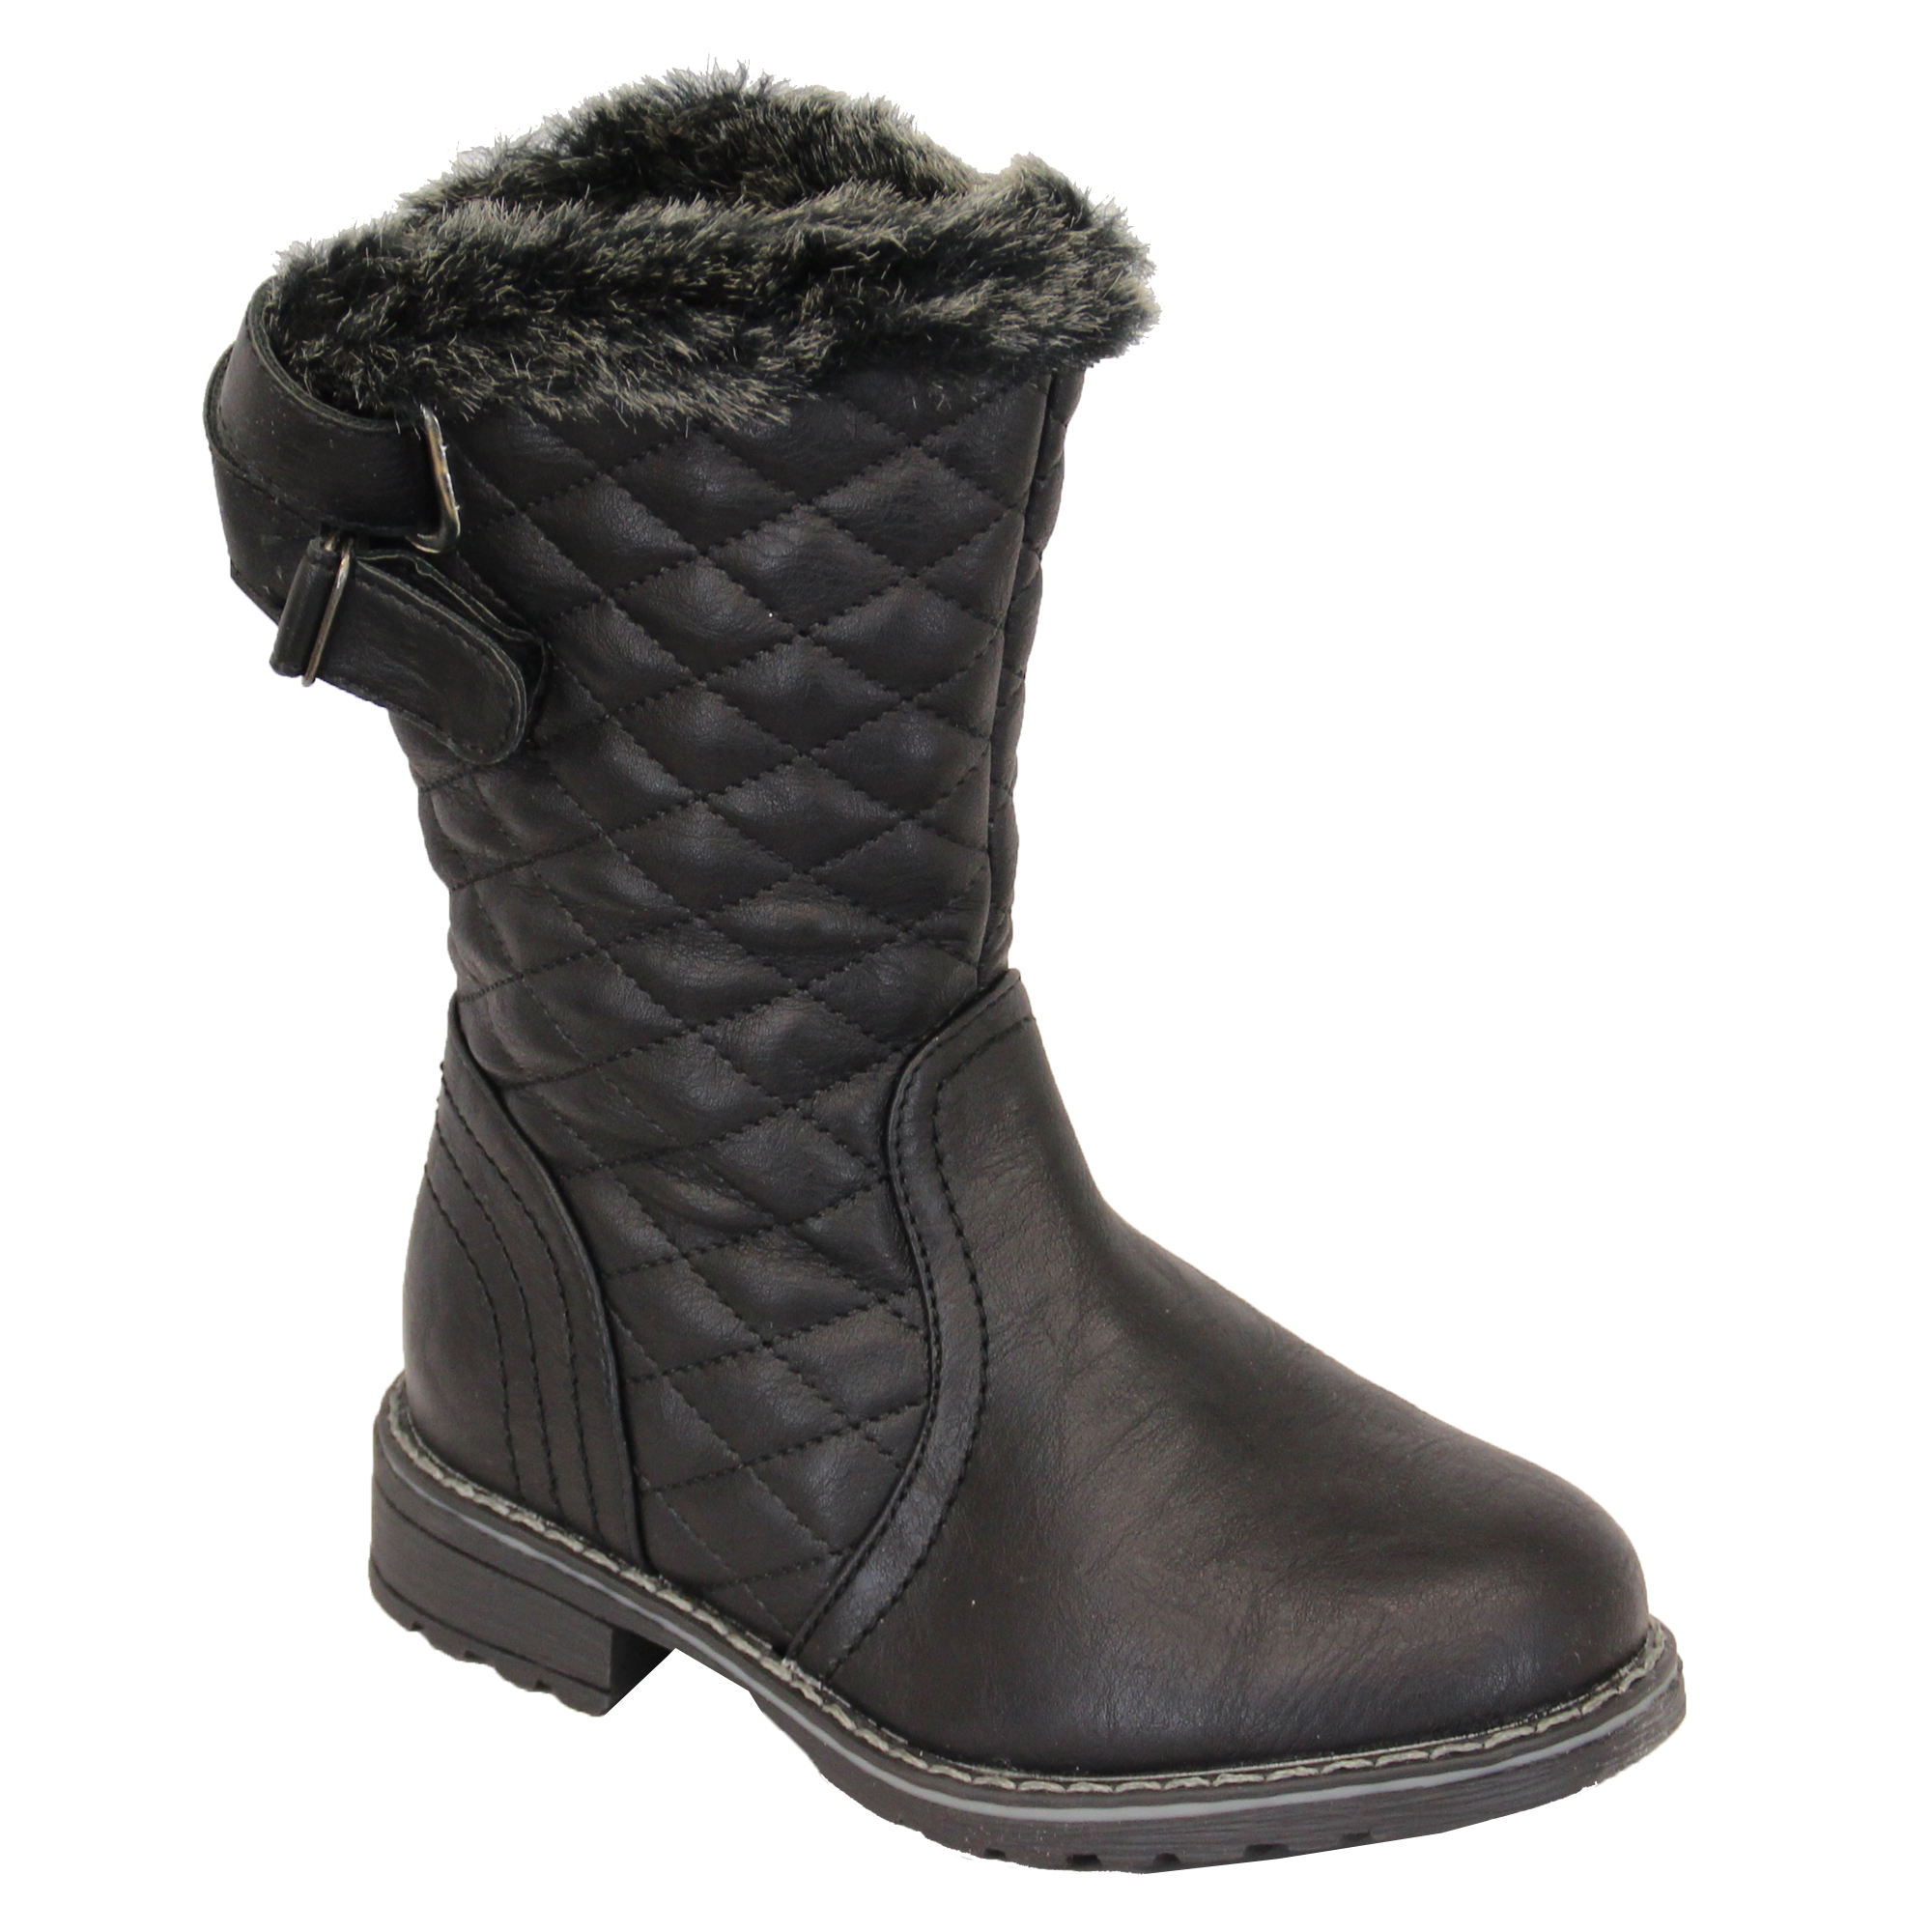 snow boots shoes leather look high ankle top